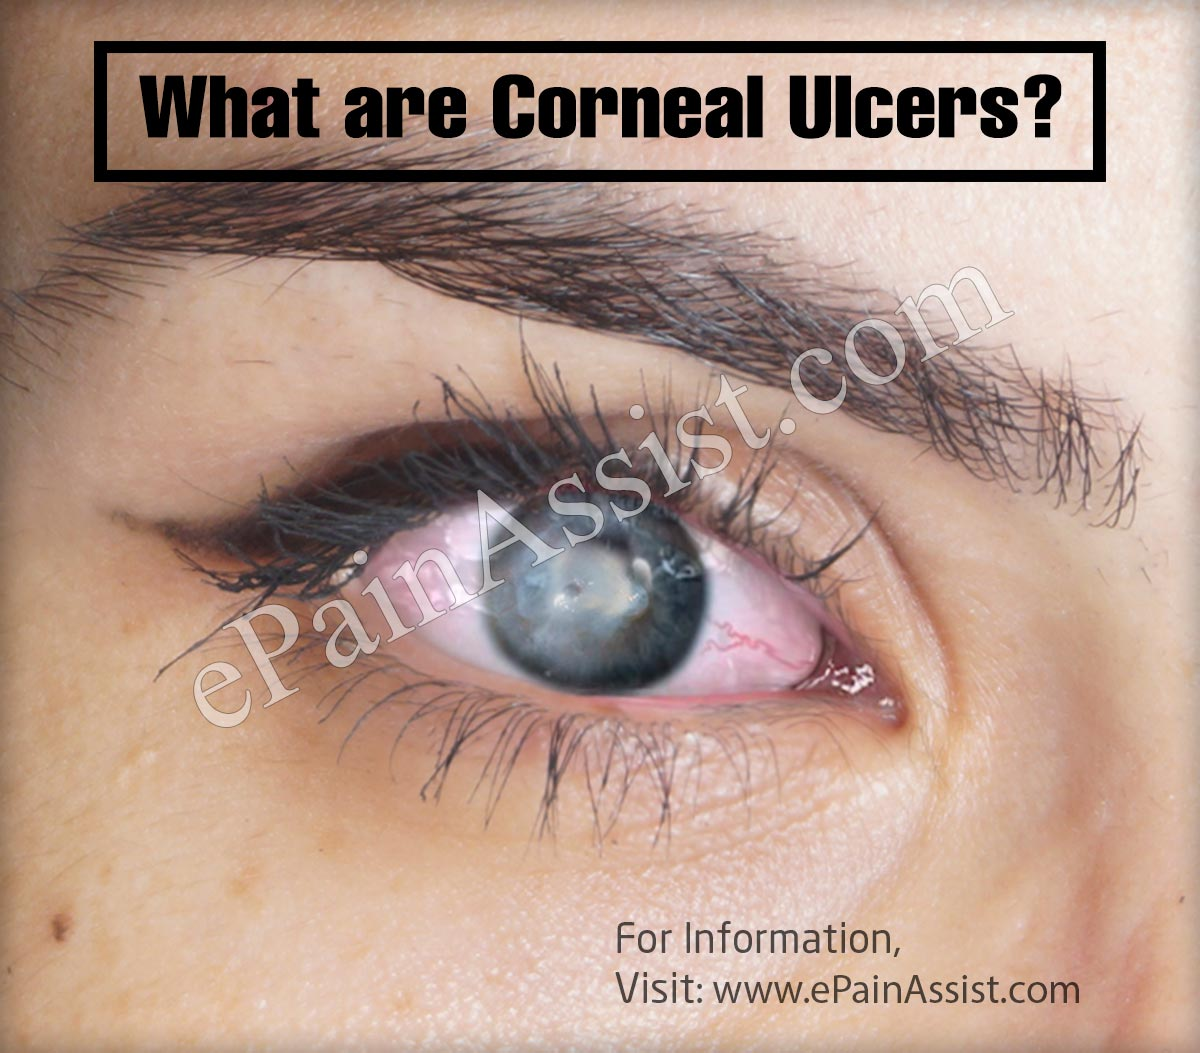 What are Corneal Ulcers?